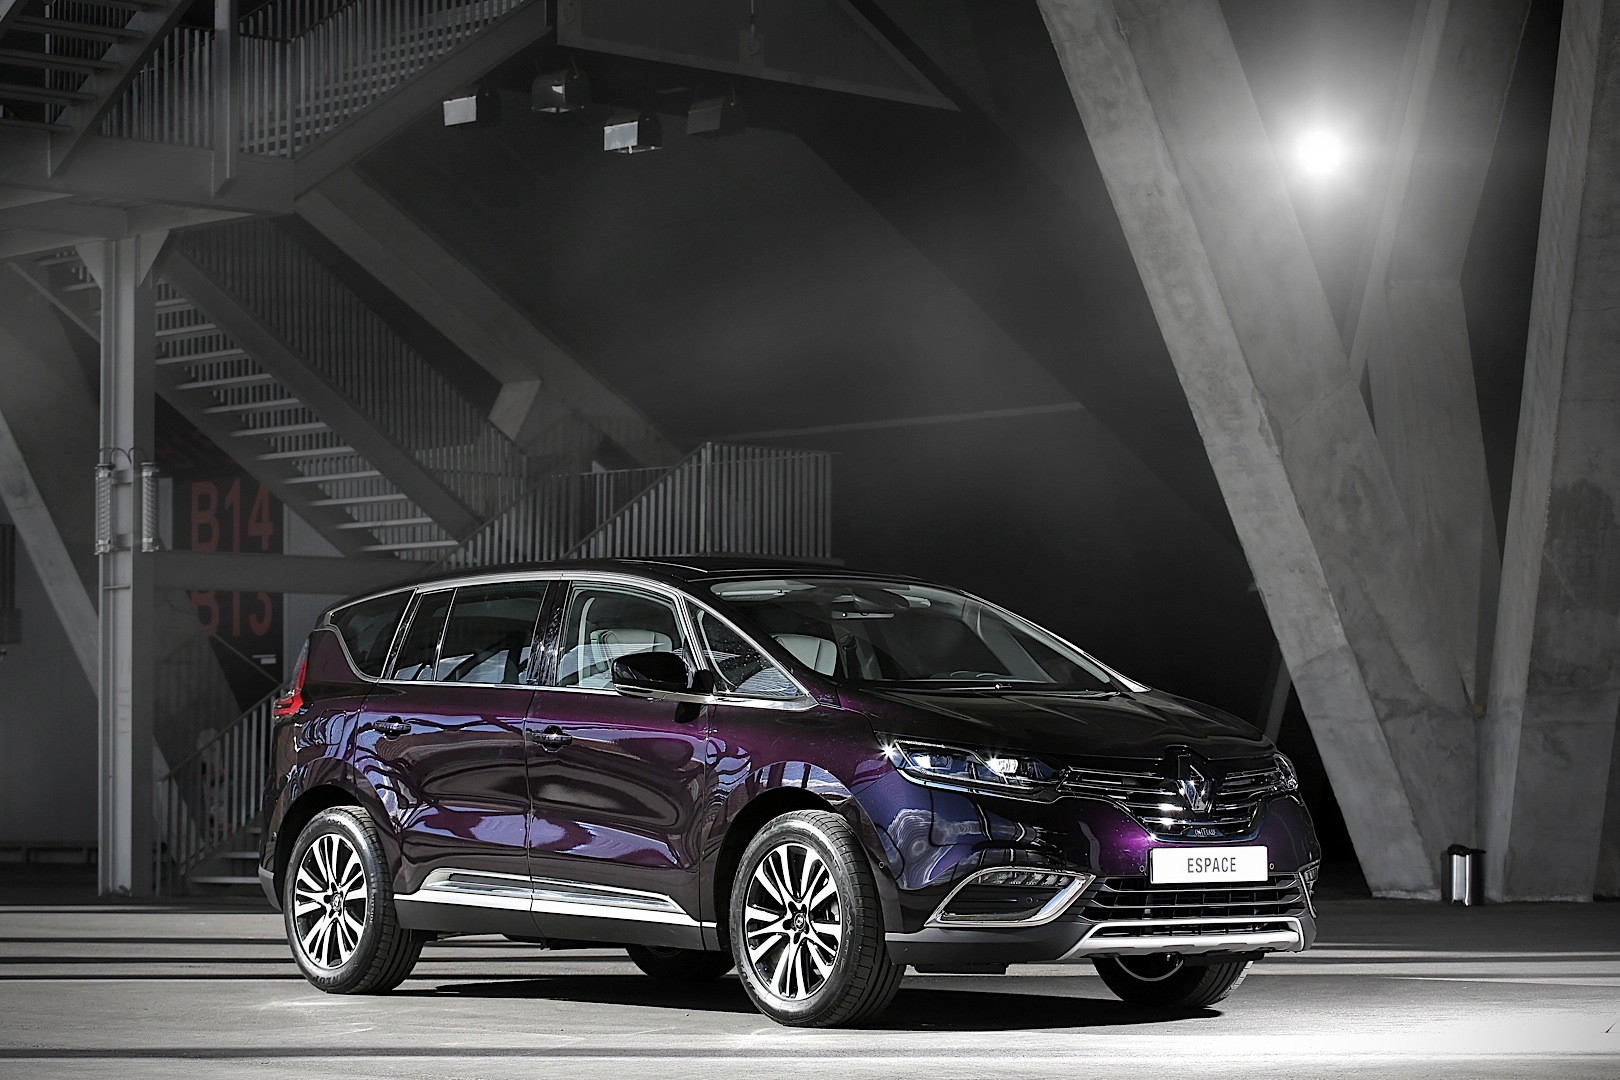 2015 renault espace looks stunning in dark amethyst autoevolution. Black Bedroom Furniture Sets. Home Design Ideas